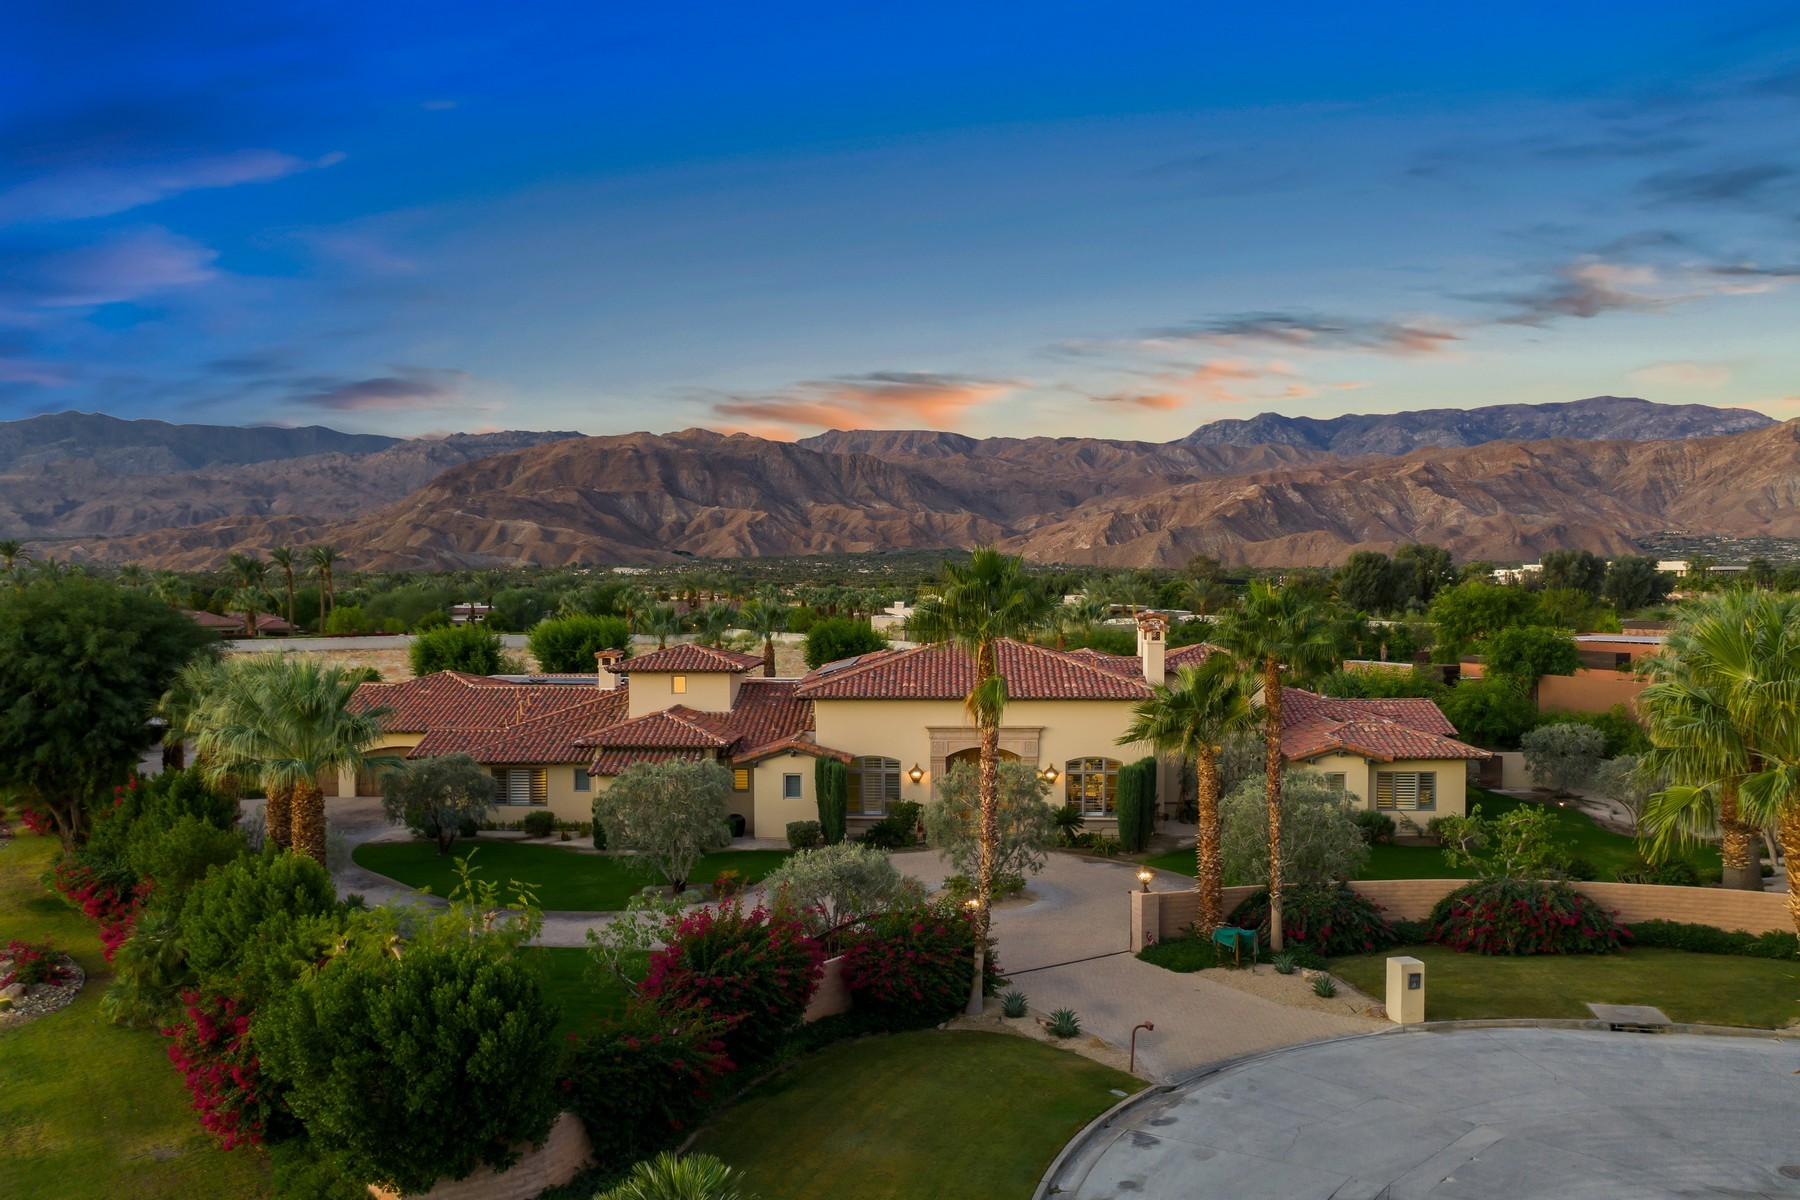 Single Family Homes for Sale at 1 Beach Dunes Court Rancho Mirage, California 92270 United States